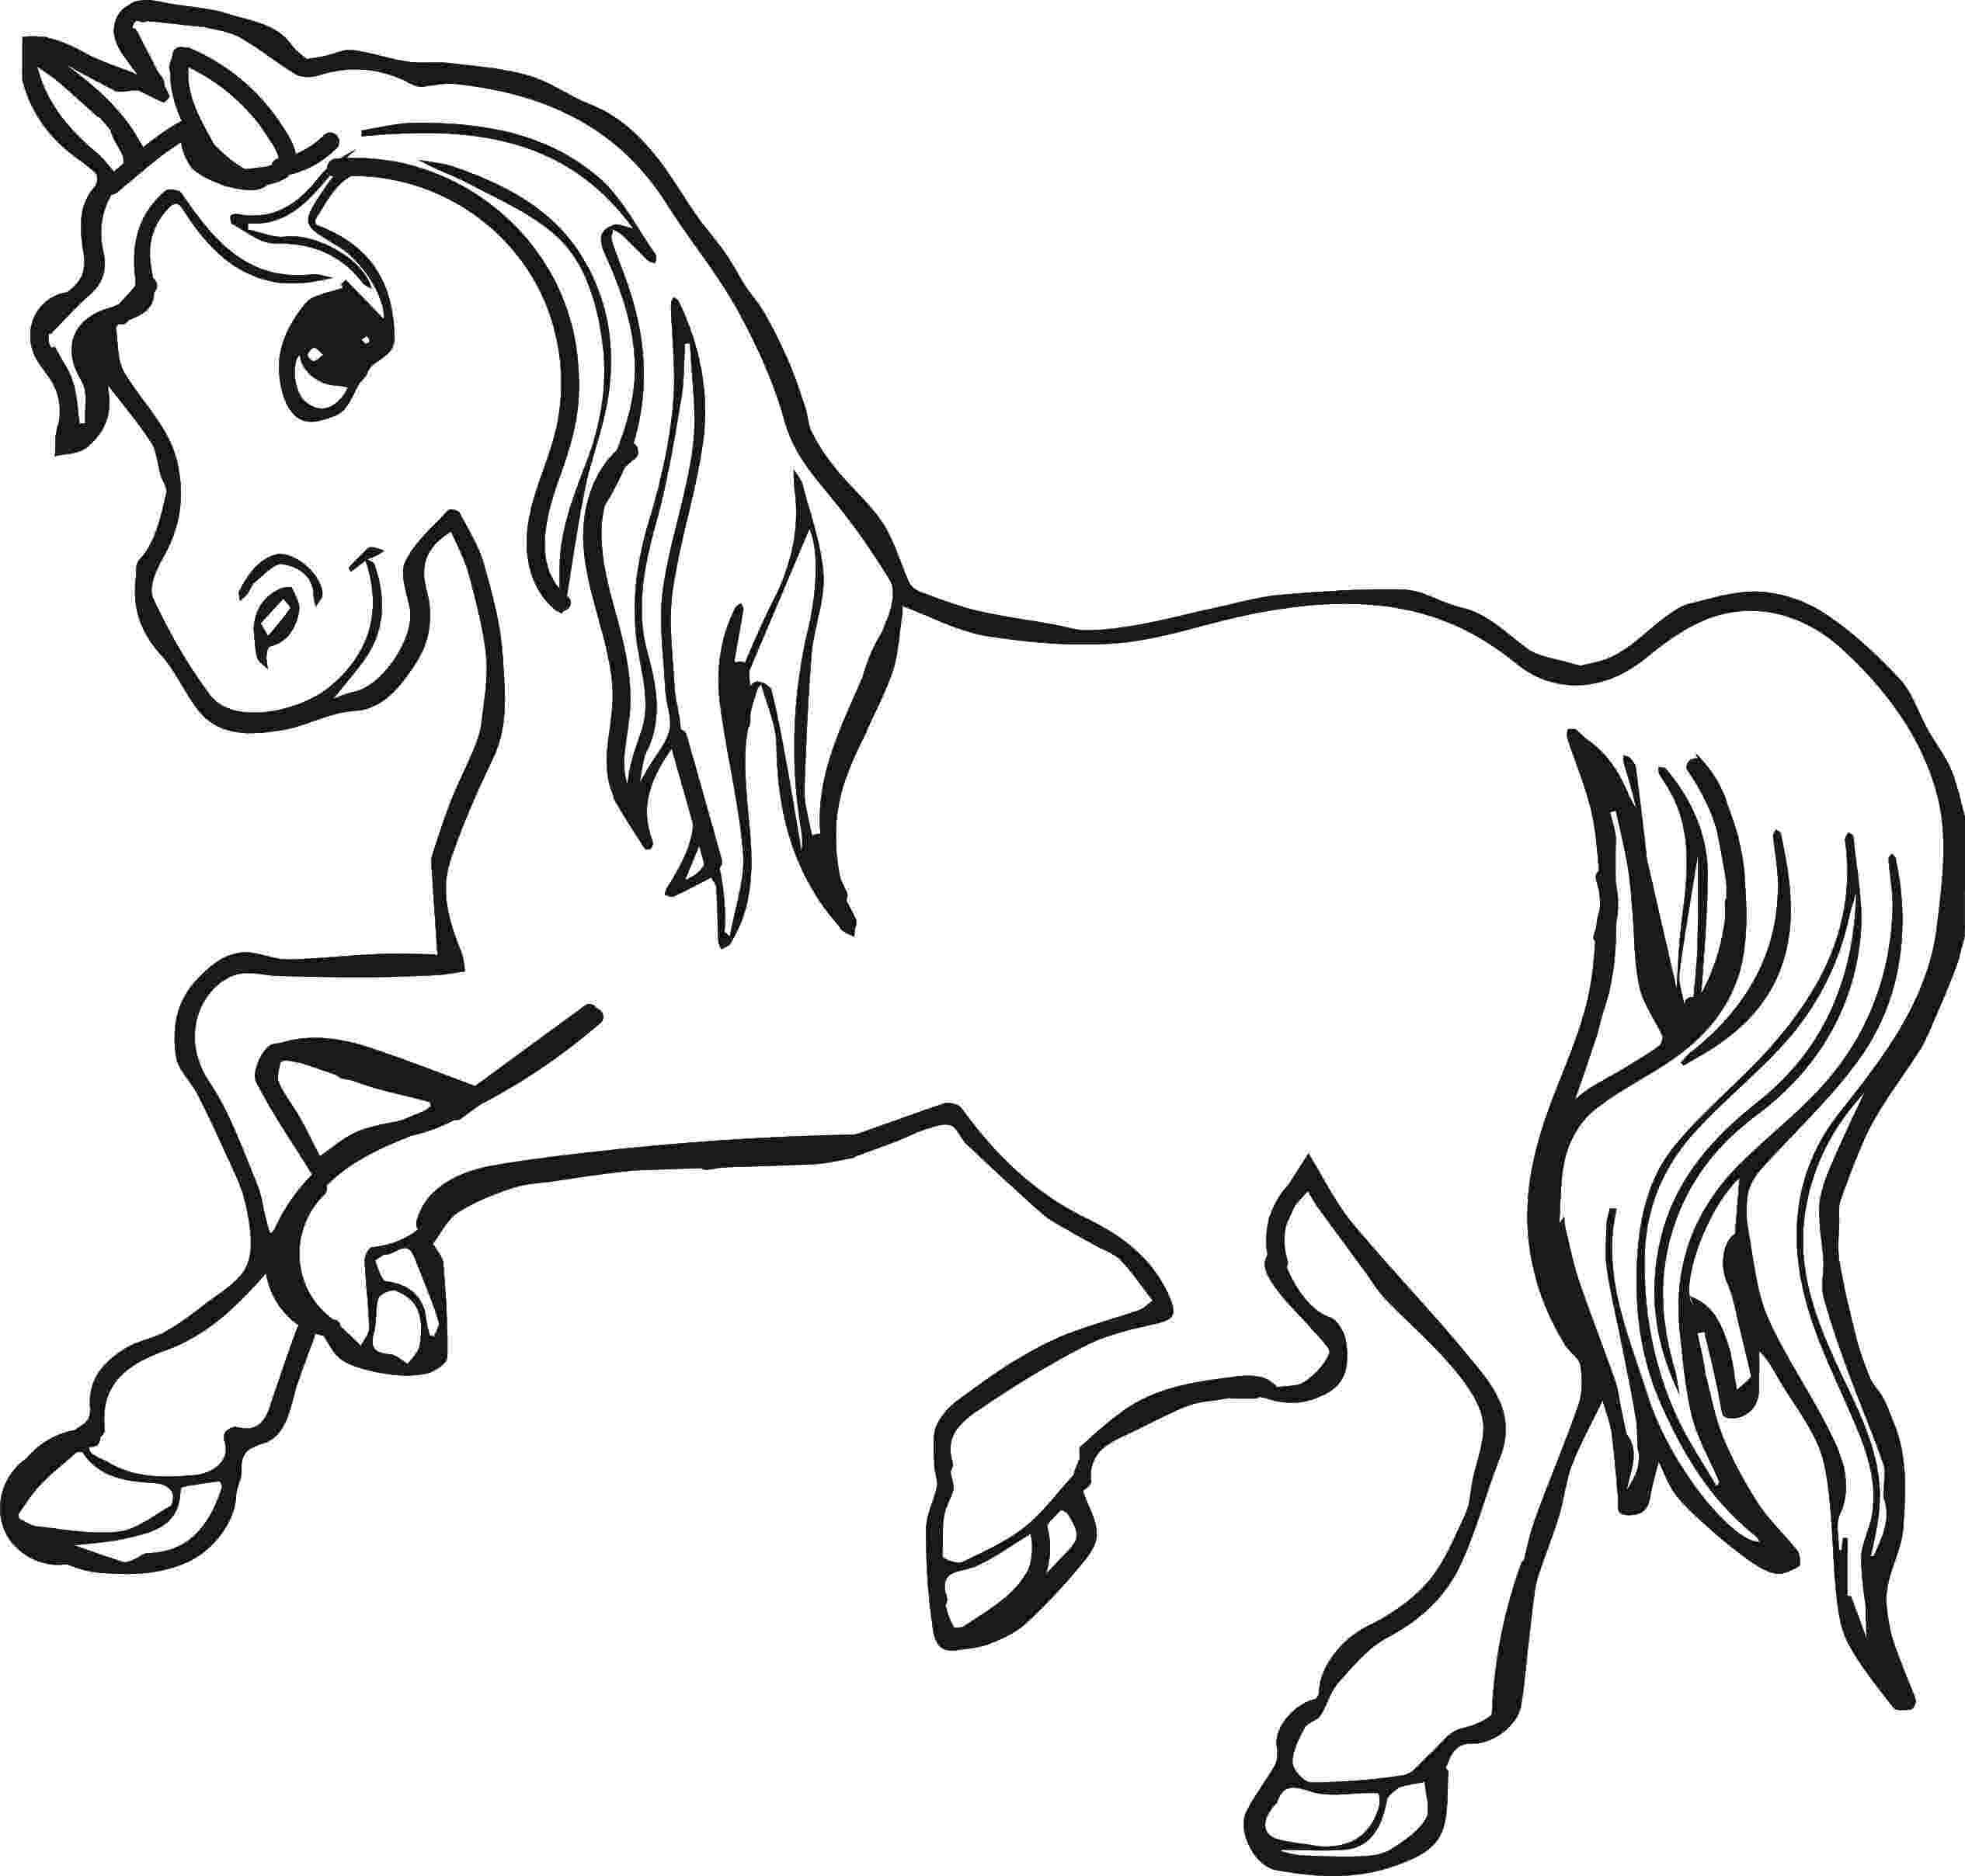 picture of horses to color interactive magazine horse coloring pictures color horses of picture to